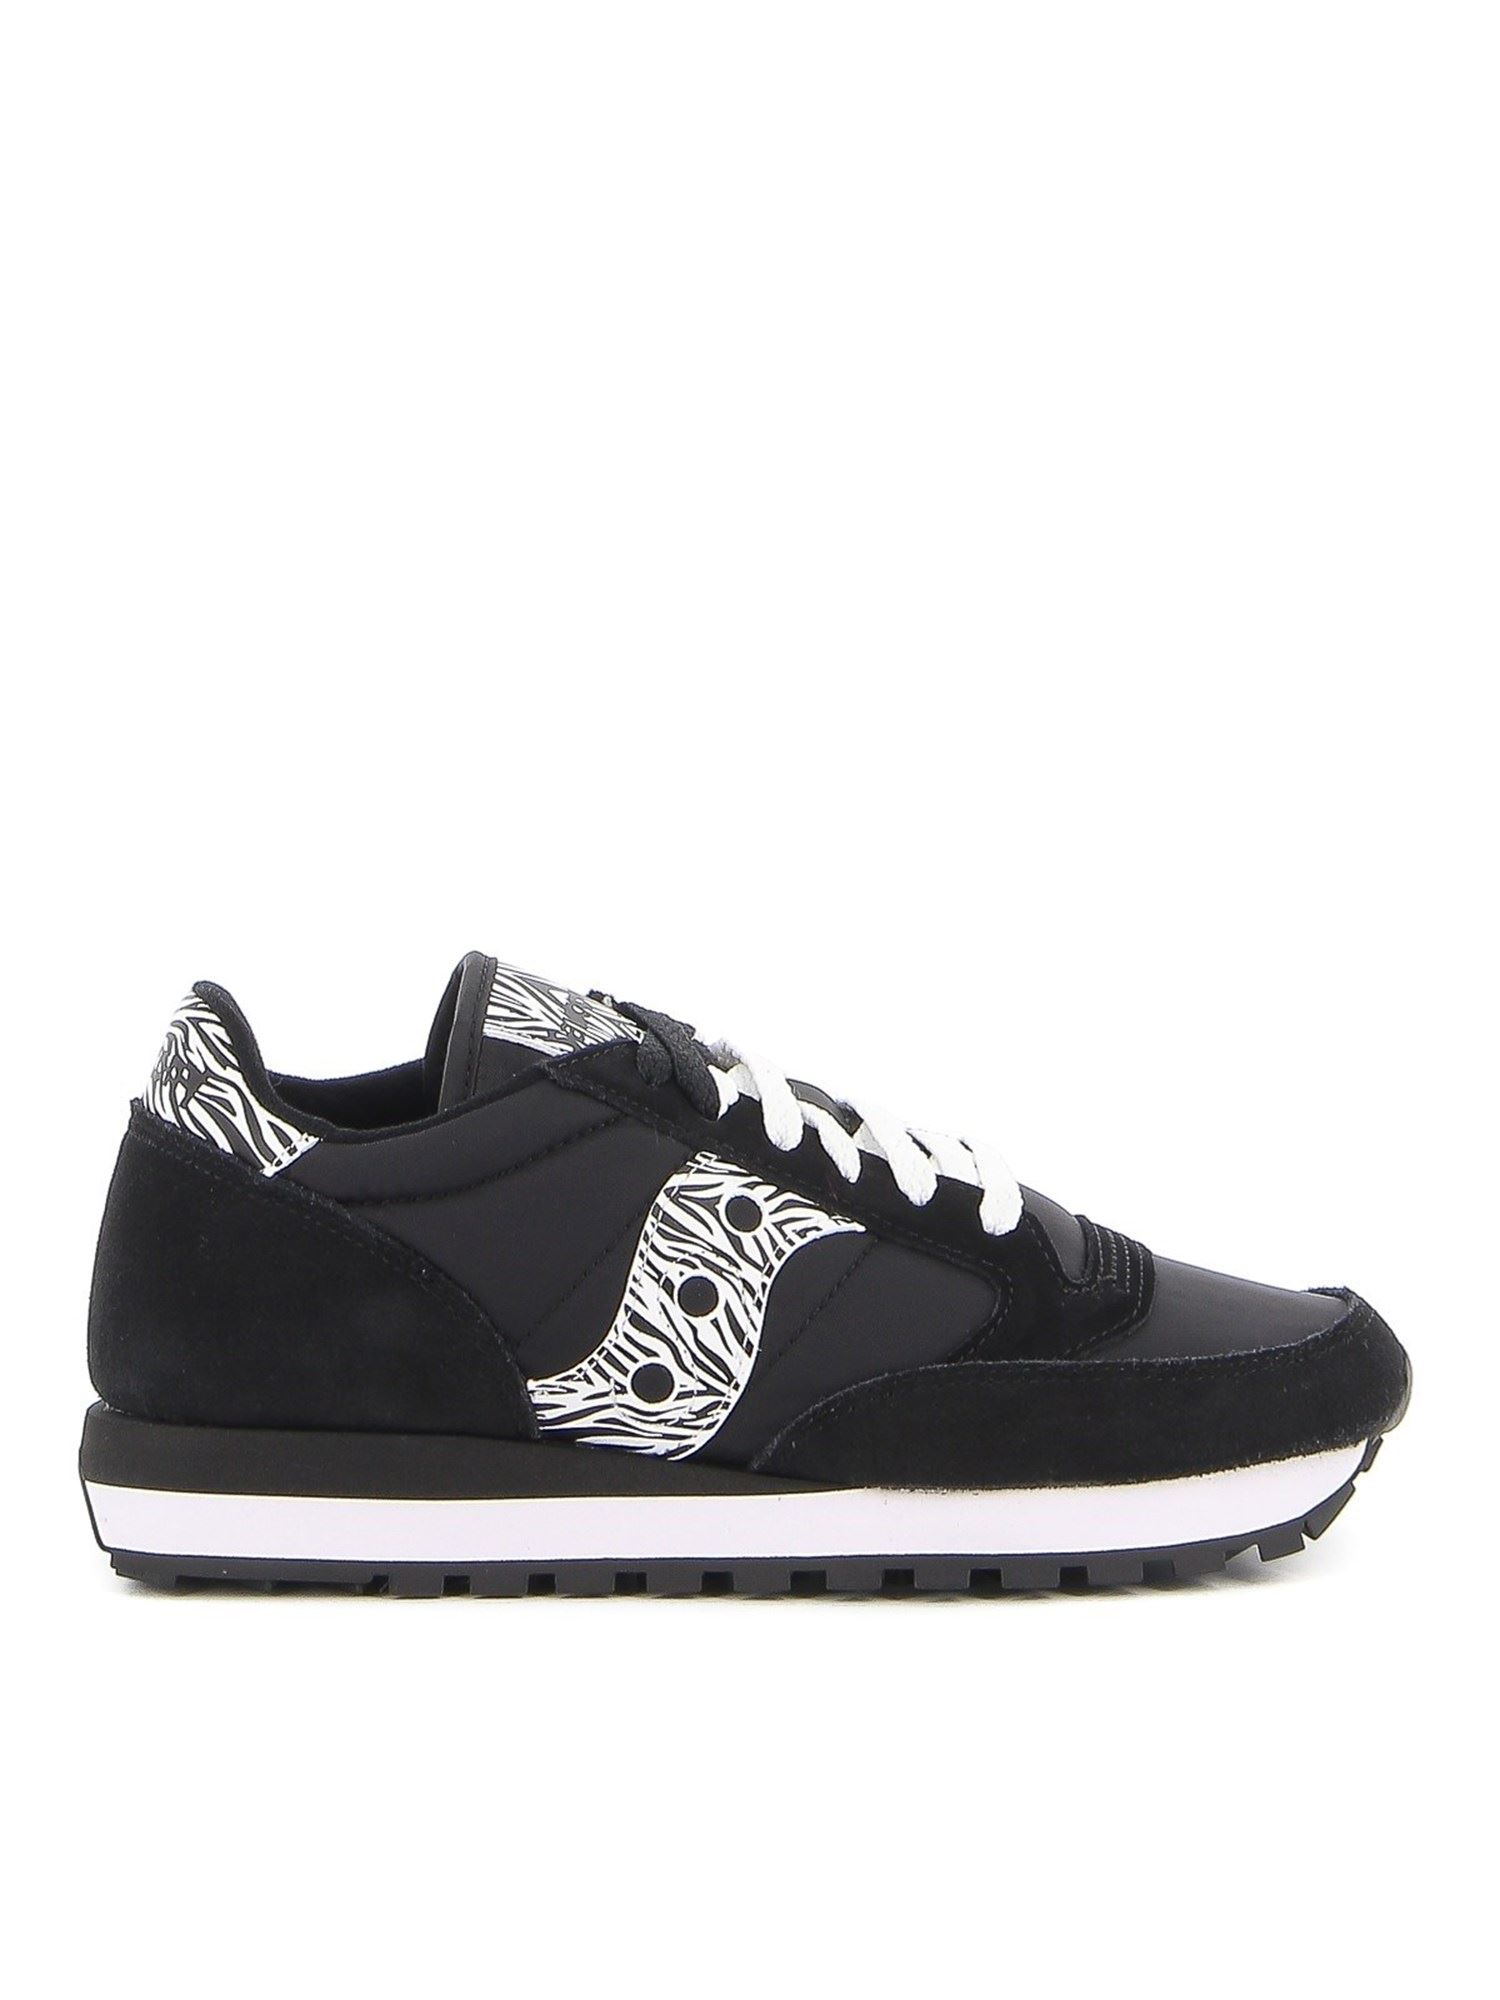 Saucony JAZZ ORIGINAL ANIMALIER DETAILS SNEAKERS IN BLACK